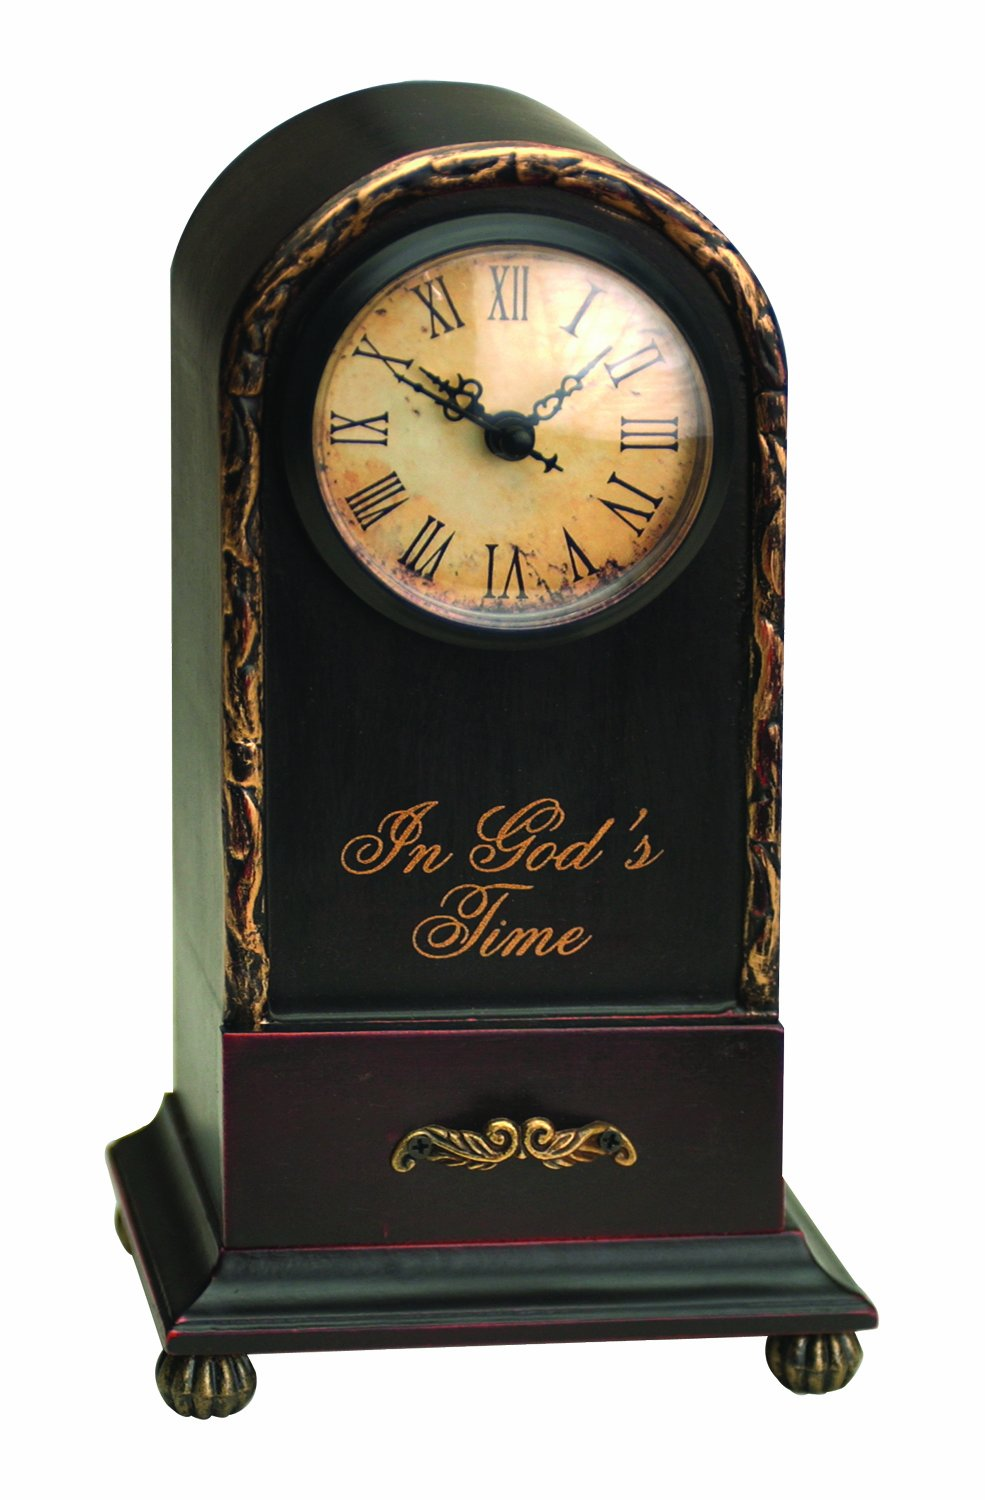 Manual Time Well Spent Table Top Analog Clock, In God's Time, 9.5-Inch - Inspirational wooden table top clock with round, inset face Stands 9.5-Inch tall on a sturdy 5.25-inch footed base Antique look from the rounded and distressed feet to the distressed gold trim finish - clocks, bedroom-decor, bedroom - 71d xmaO0nL -